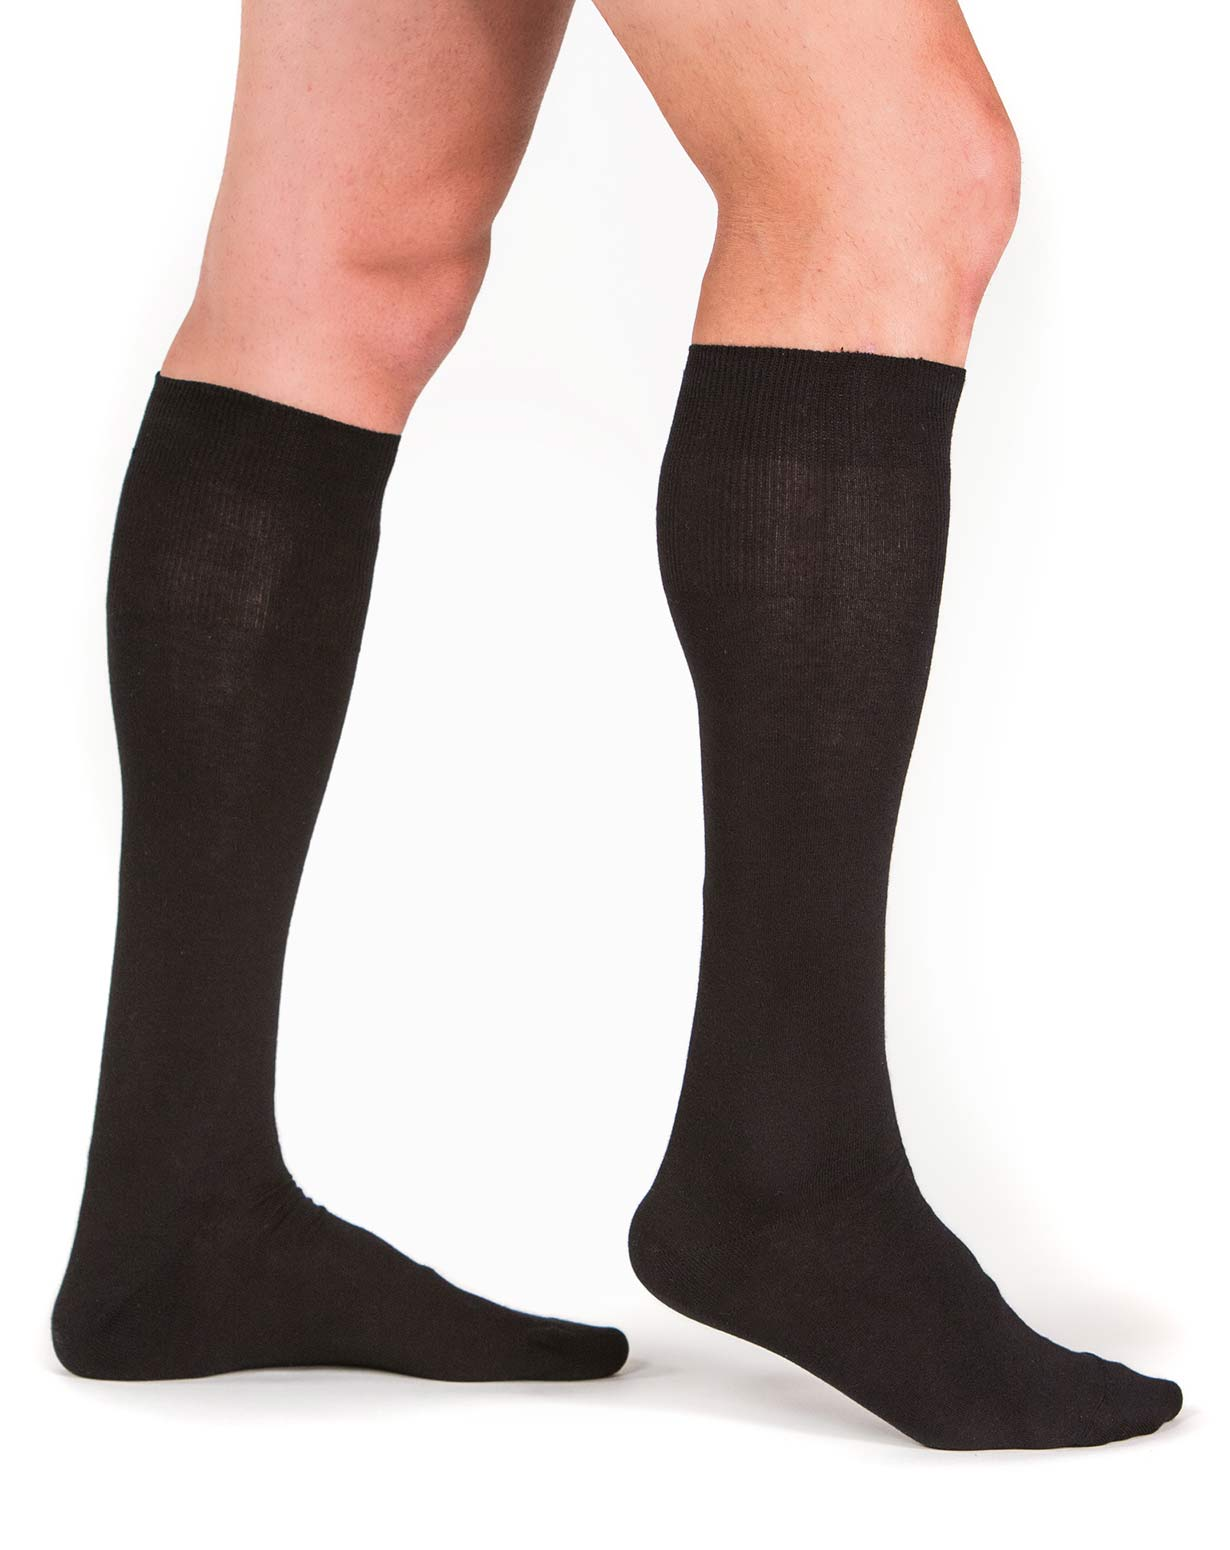 Men's Cotton Cashmere Dress Socks